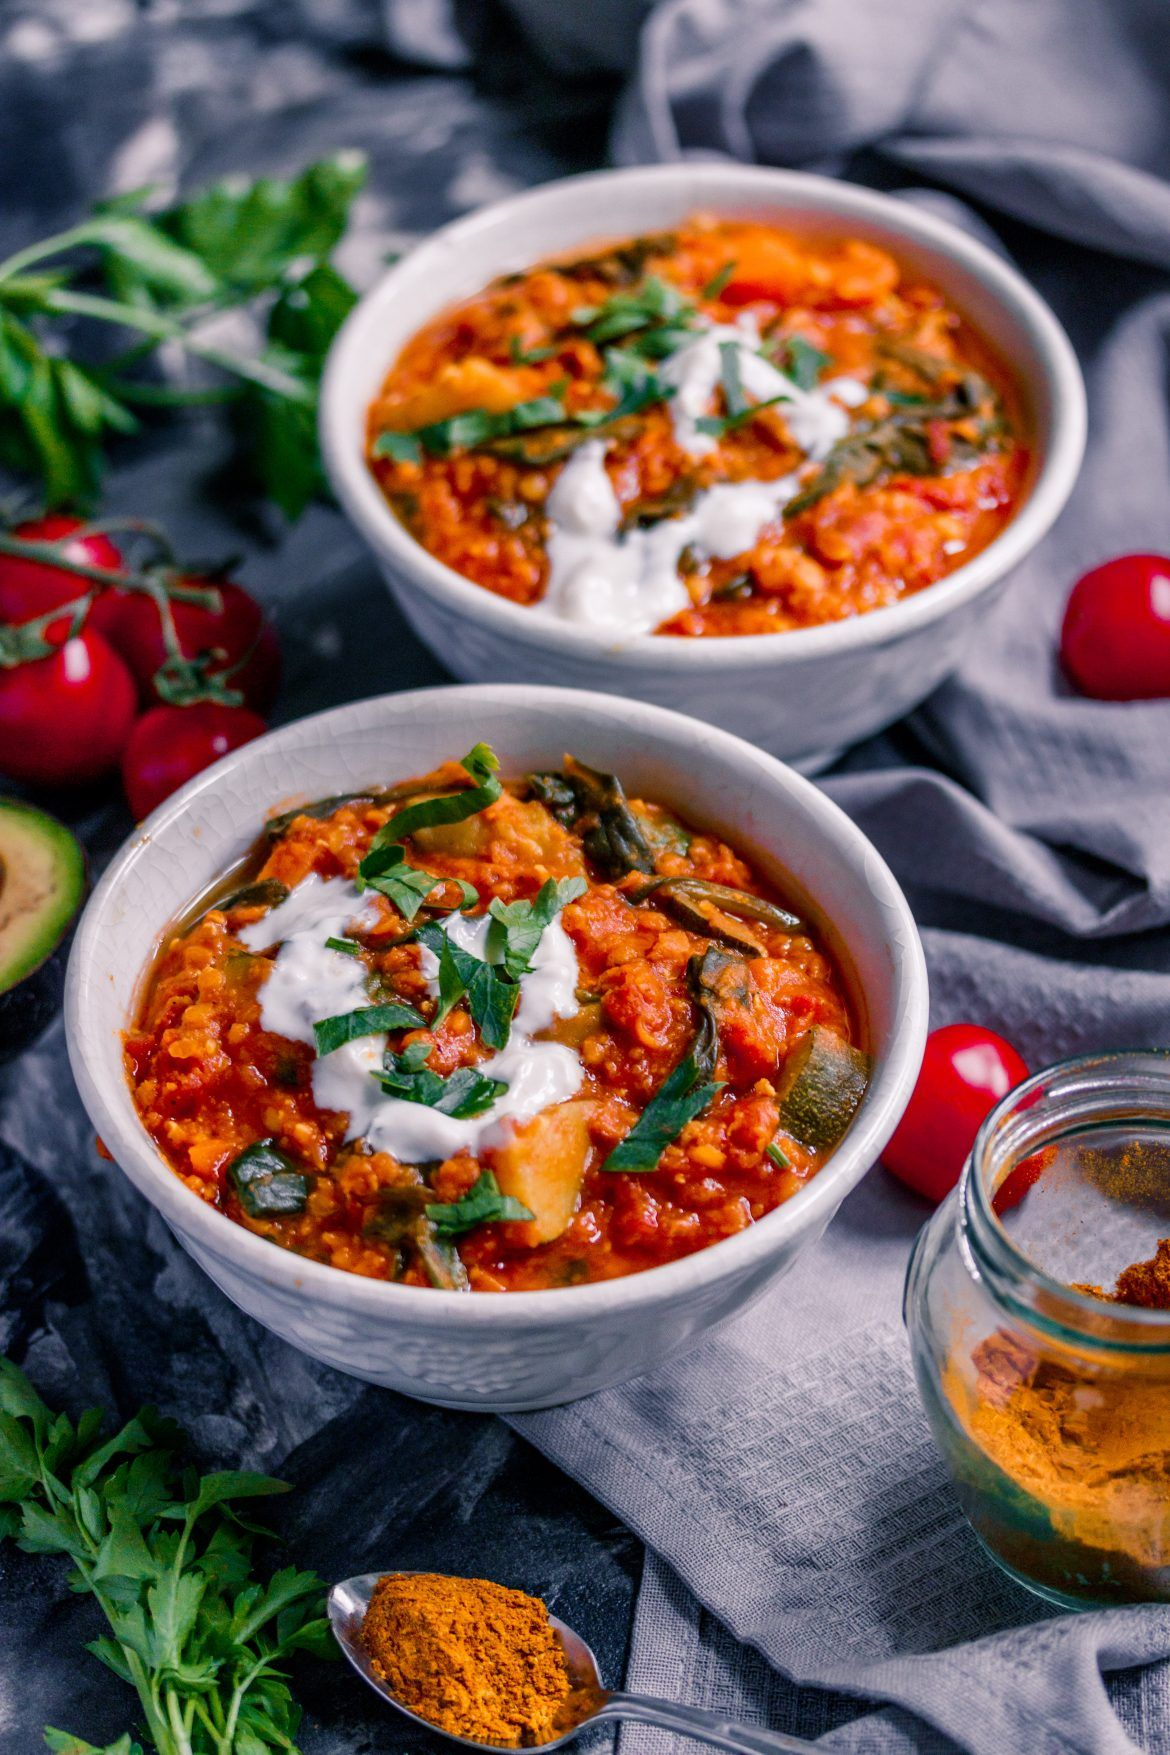 Photo of Simple red lentil stew